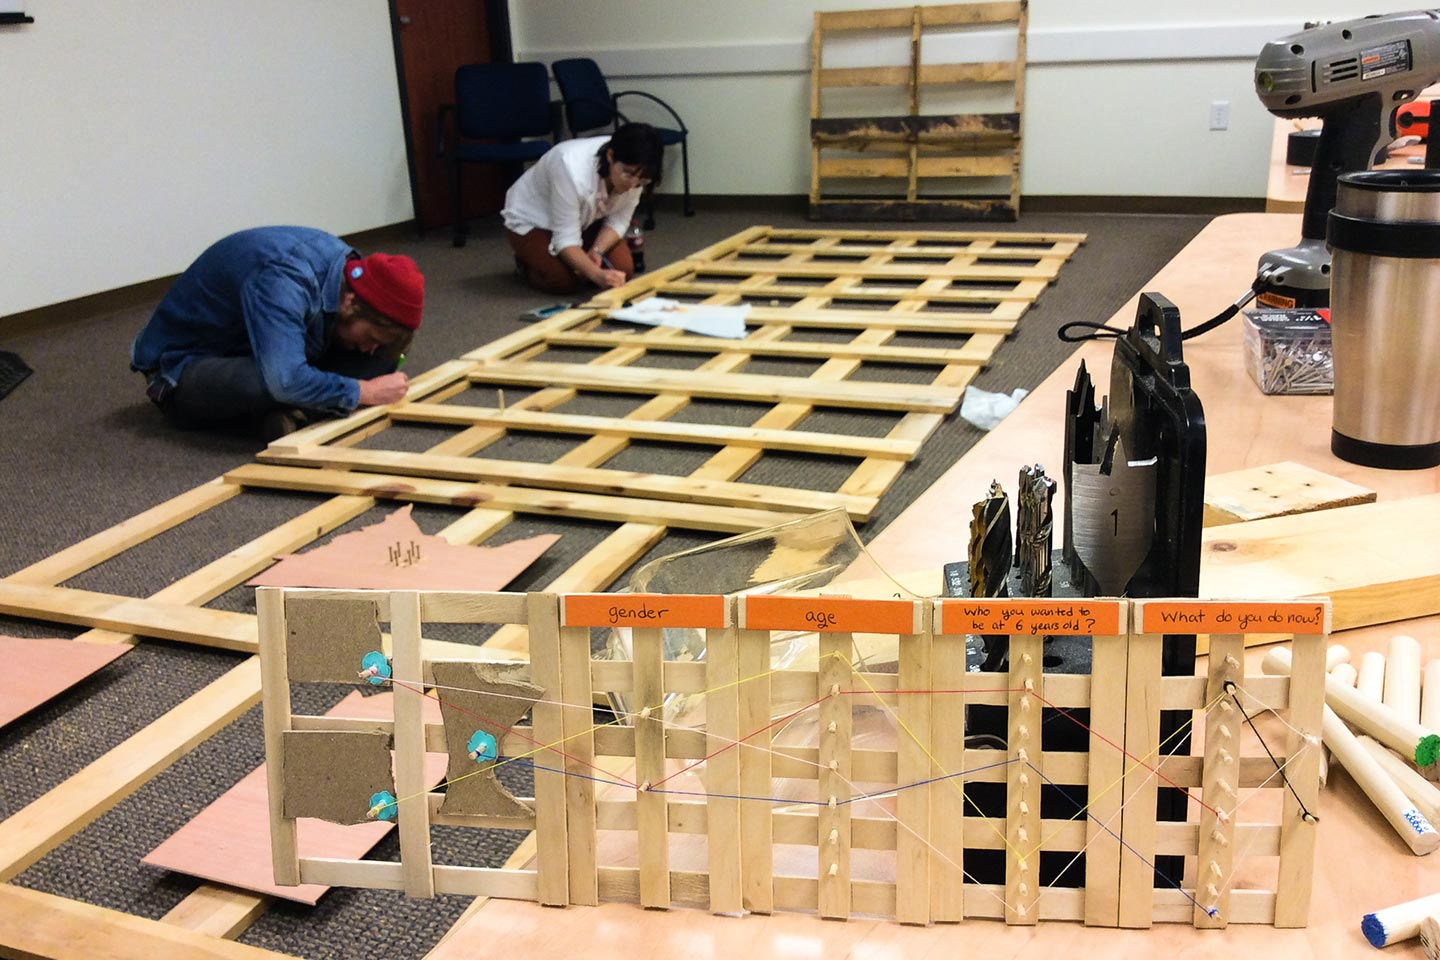 Two people assembling wooden structure with small prototype in the foreground